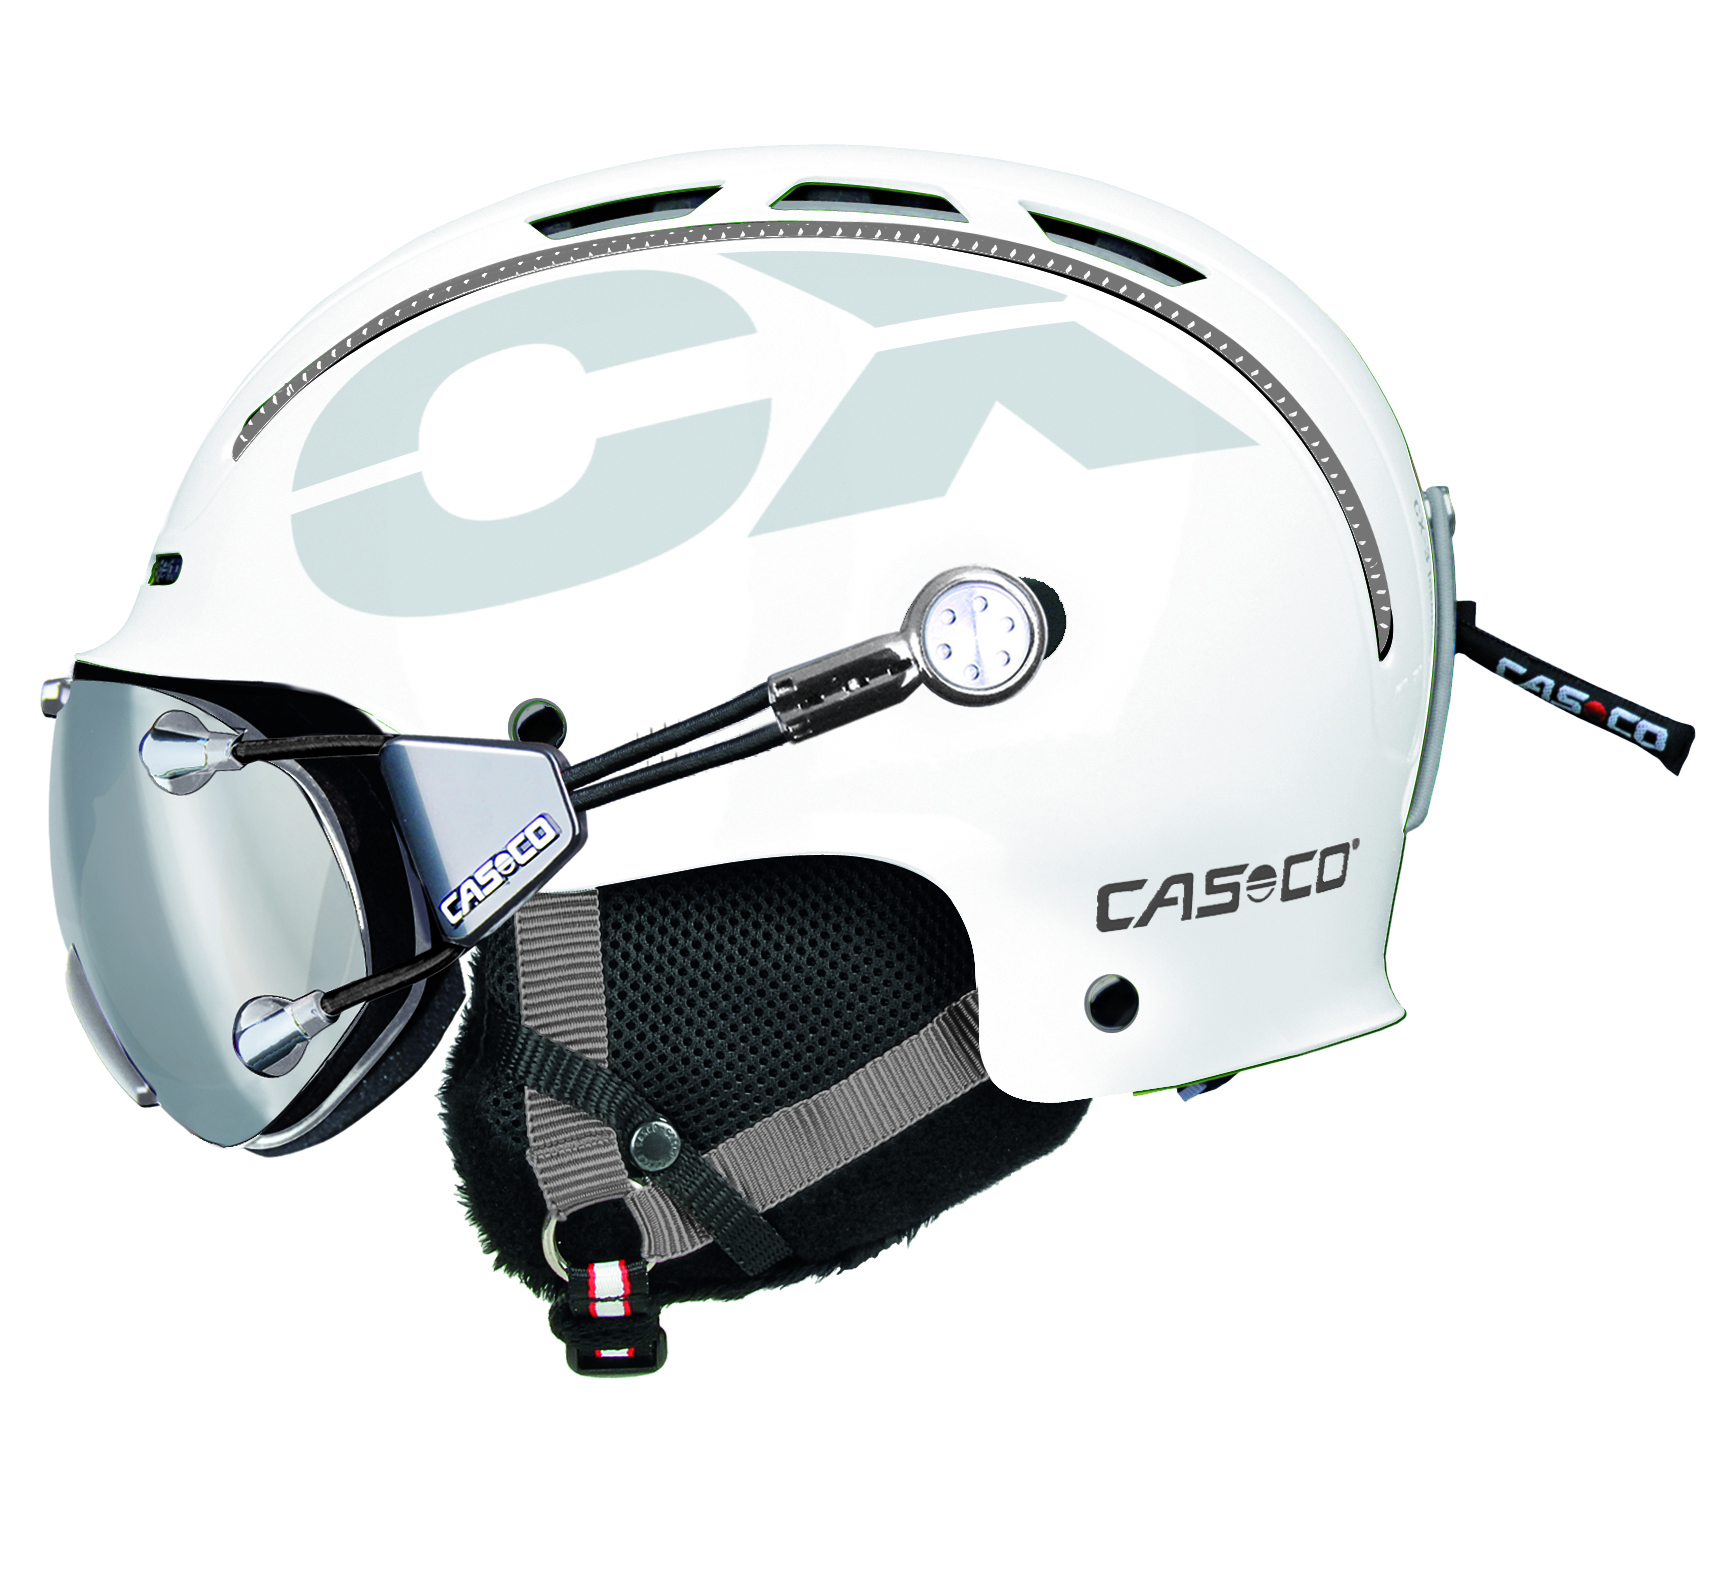 CASCO  CX3  Icecube